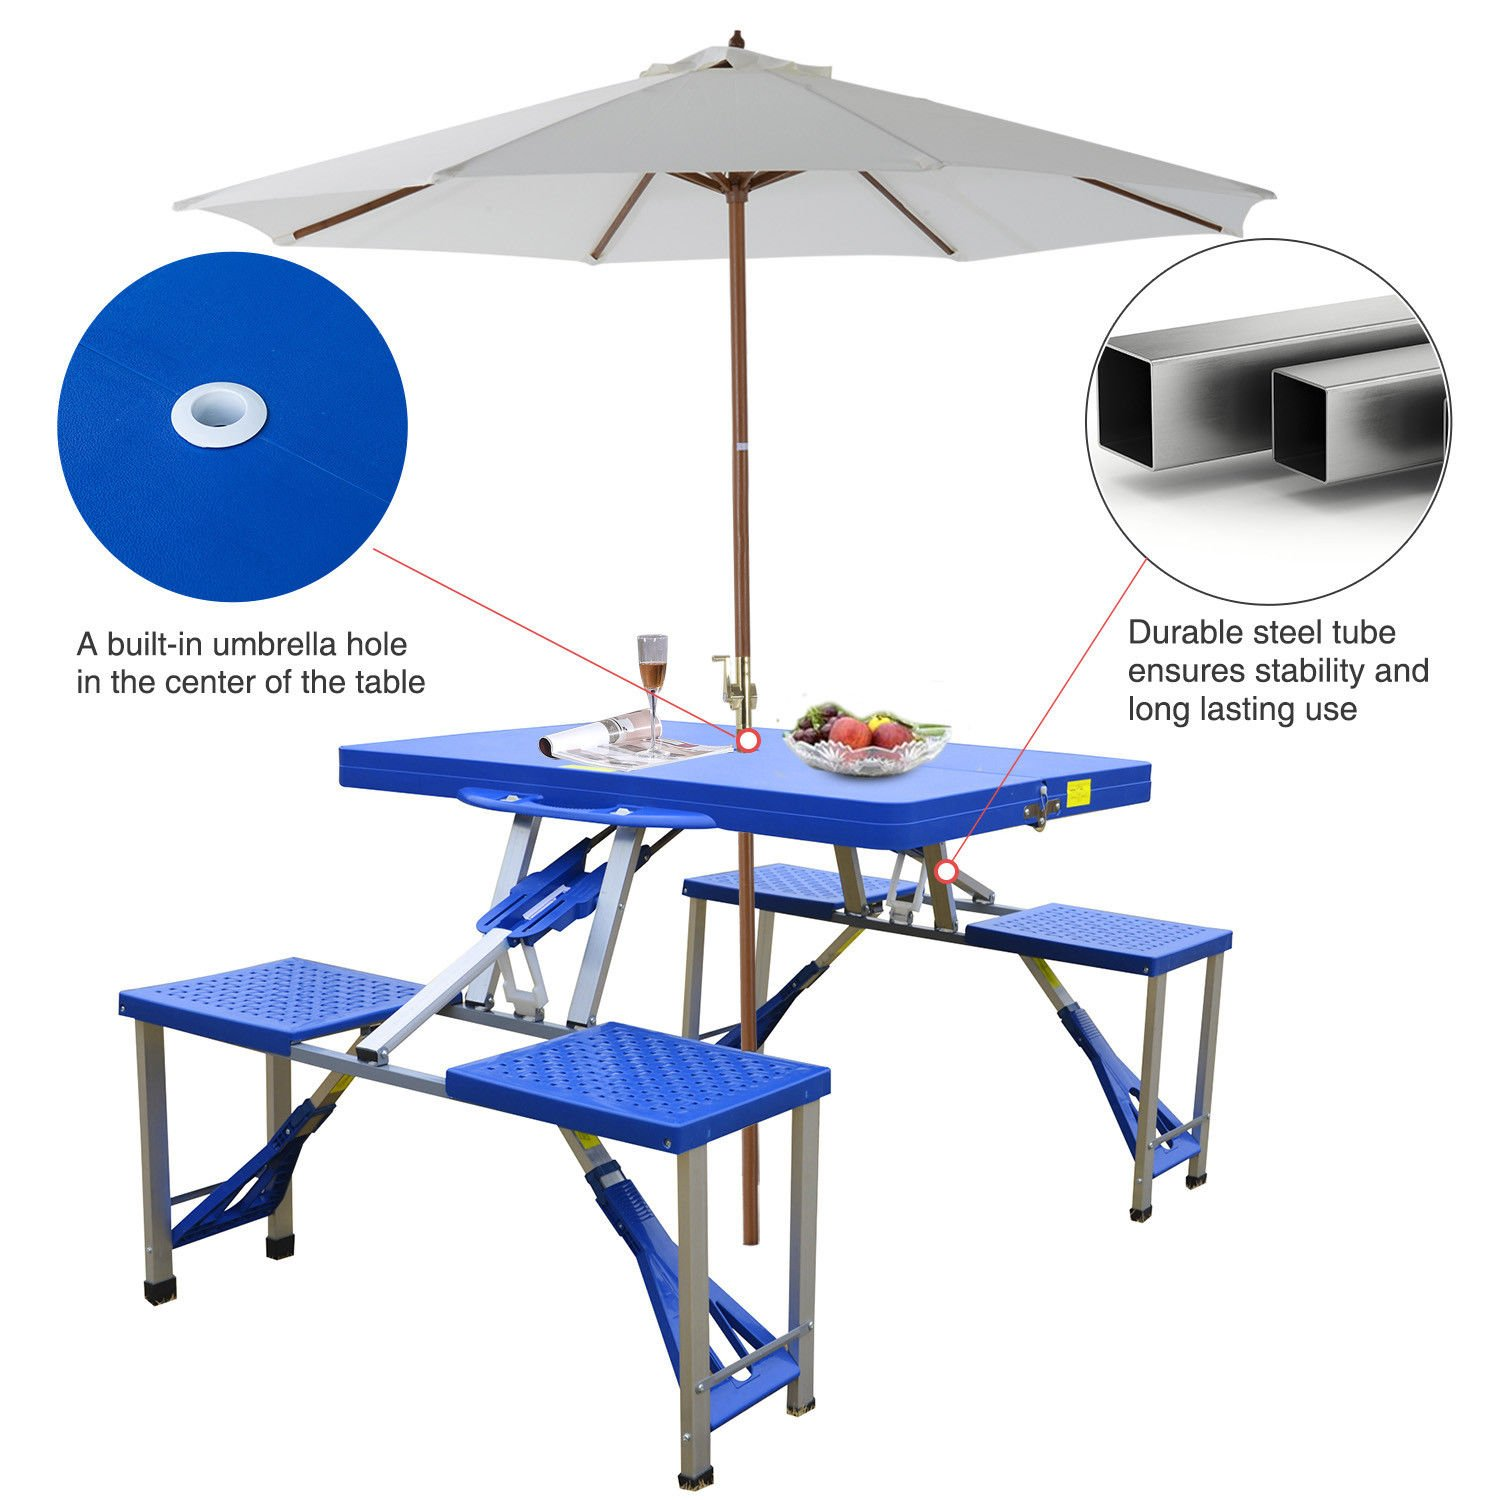 Ar Portable Folding Plastic Camping Picnic Table 4 Seats Outdoor Garden W/Case Blue by Ar (Image #2)